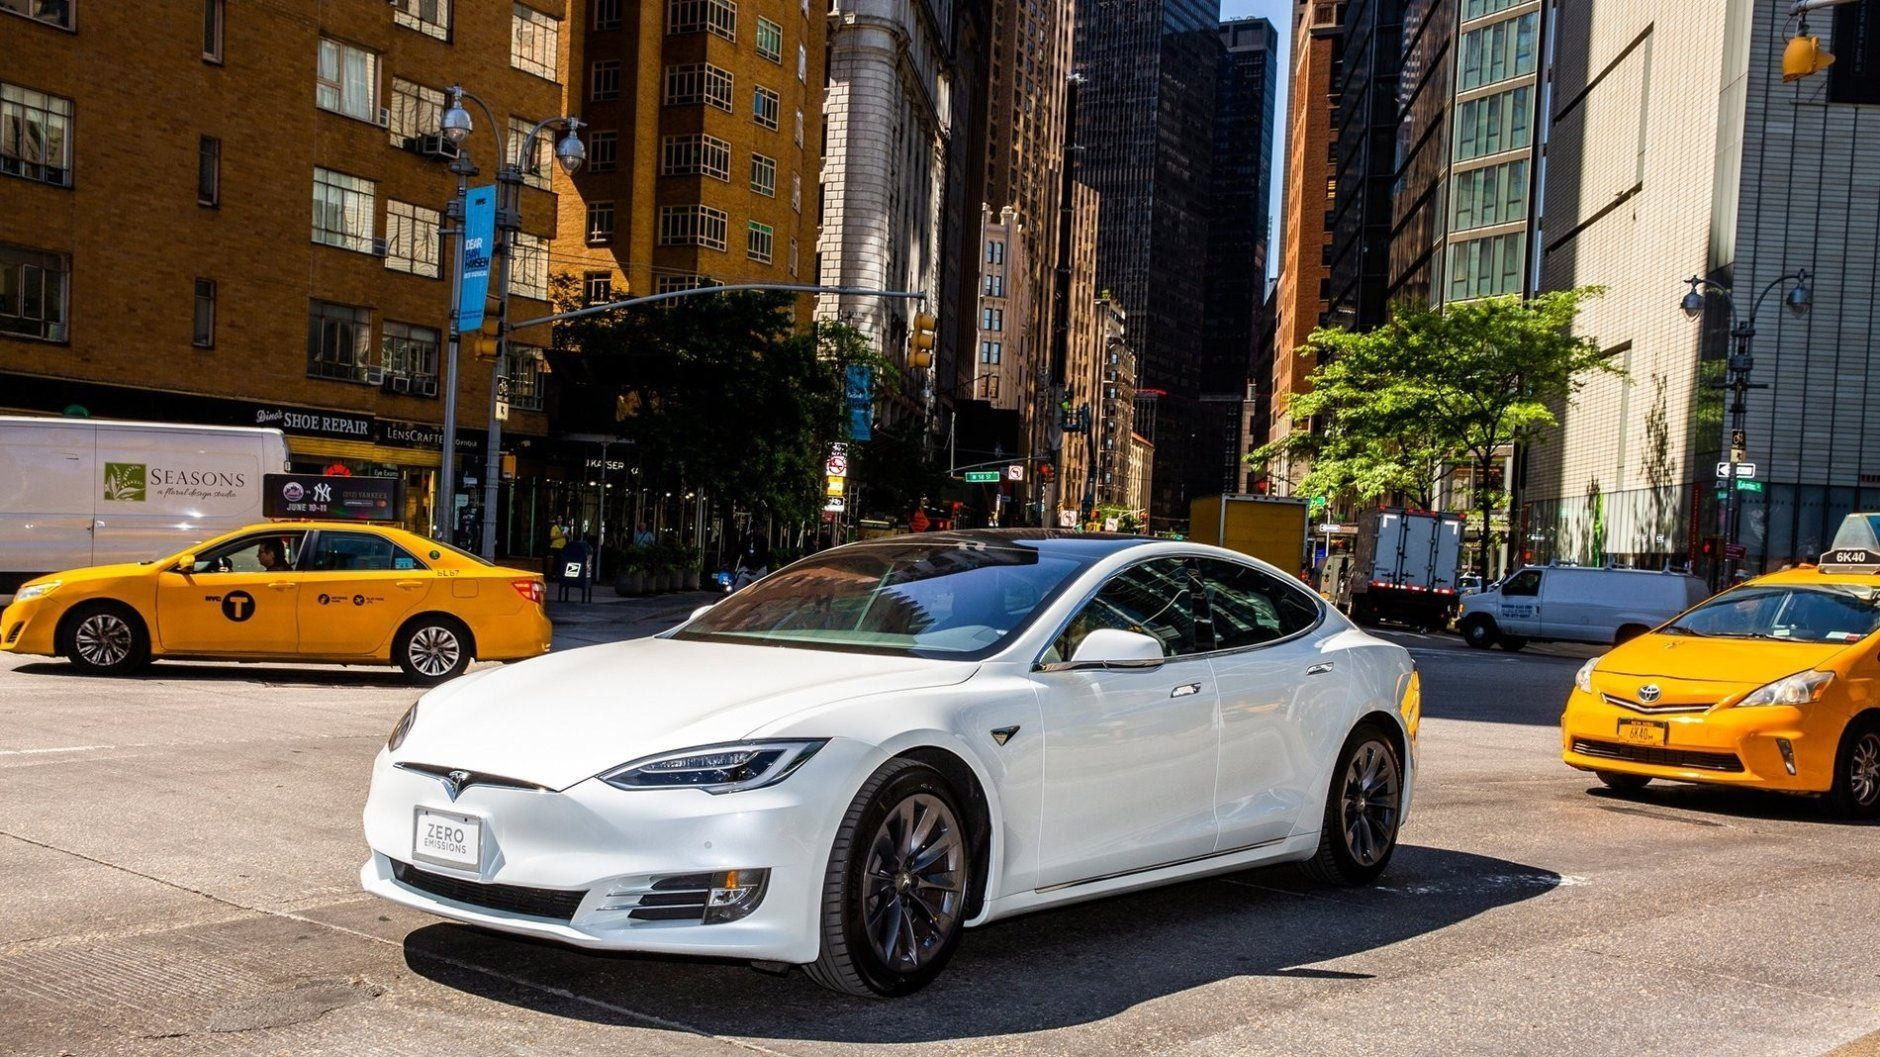 <h3>Tesla Model S</h3> <p>The second least likely car to be stolen on this year&#8217;s list is the Tesla Model S. HLDI offered a possible explanation for why that may be.</p> <p>&#8220;Two of the vehicles on the least-stolen list are the Tesla Model S and Model X,&#8221; HLDI said. &#8220;Their low theft rate may be related to the fact that, as electric vehicles, they are usually parked in garages or close to a house to be near a power supply.&#8221;</p> <p>HLDI said a previous study showed that electric cars in general have lower theft rates compared to their combustion-powered counterparts.</p>